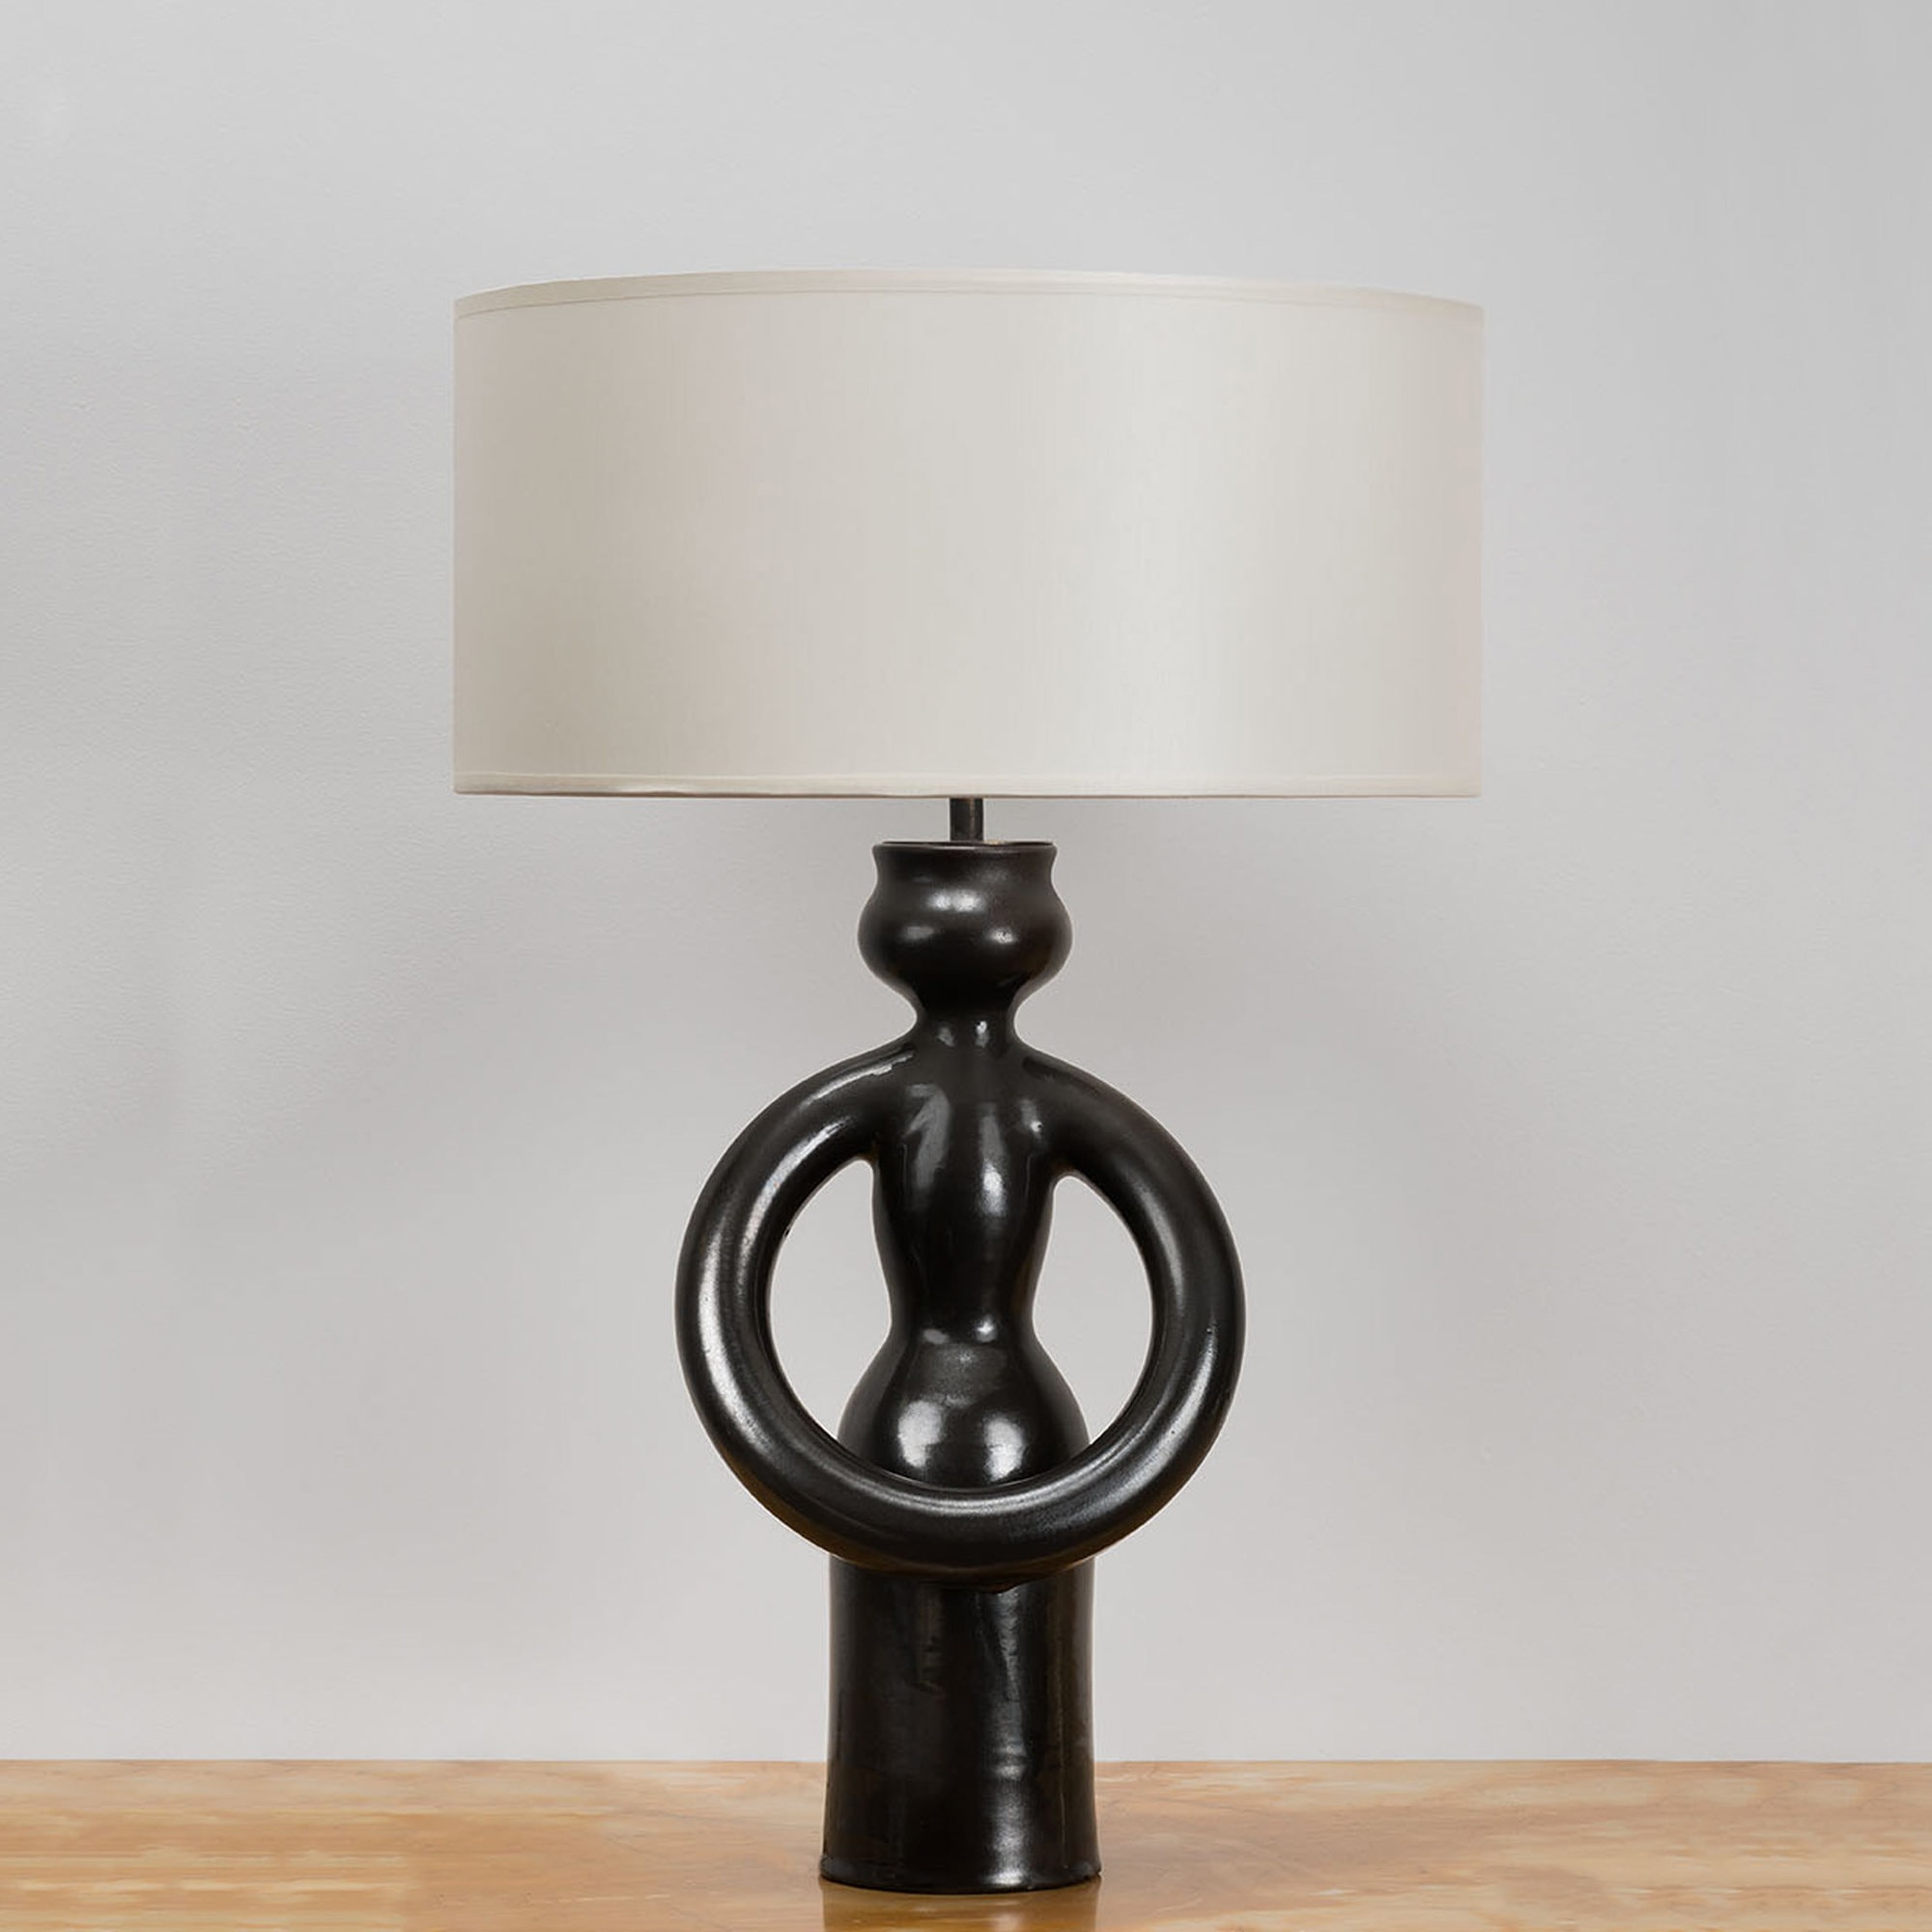 Atelier Madoura – Suzanne Ramie, Table lamp (sold), vue 01